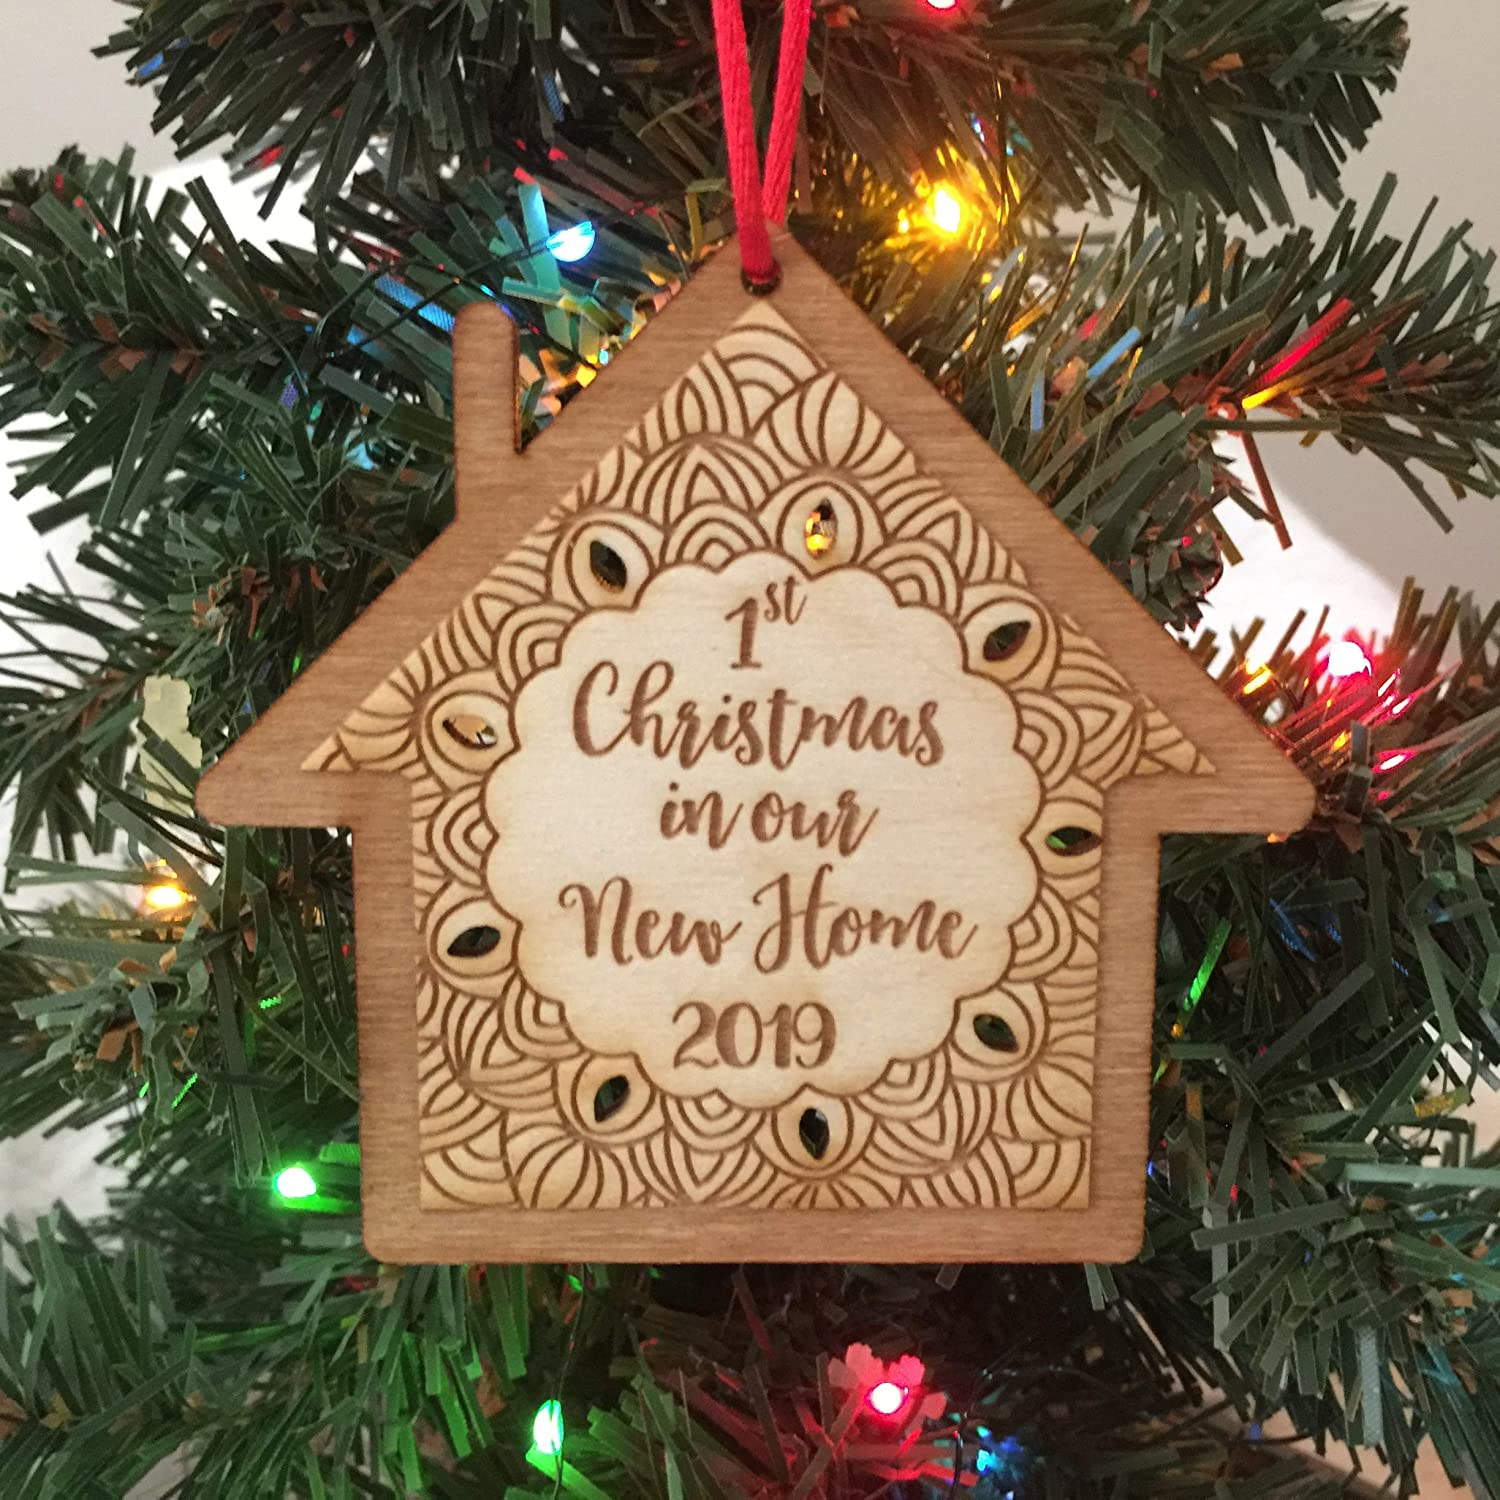 First Christmas.First Christmas In Our New Home 2019 Ornament